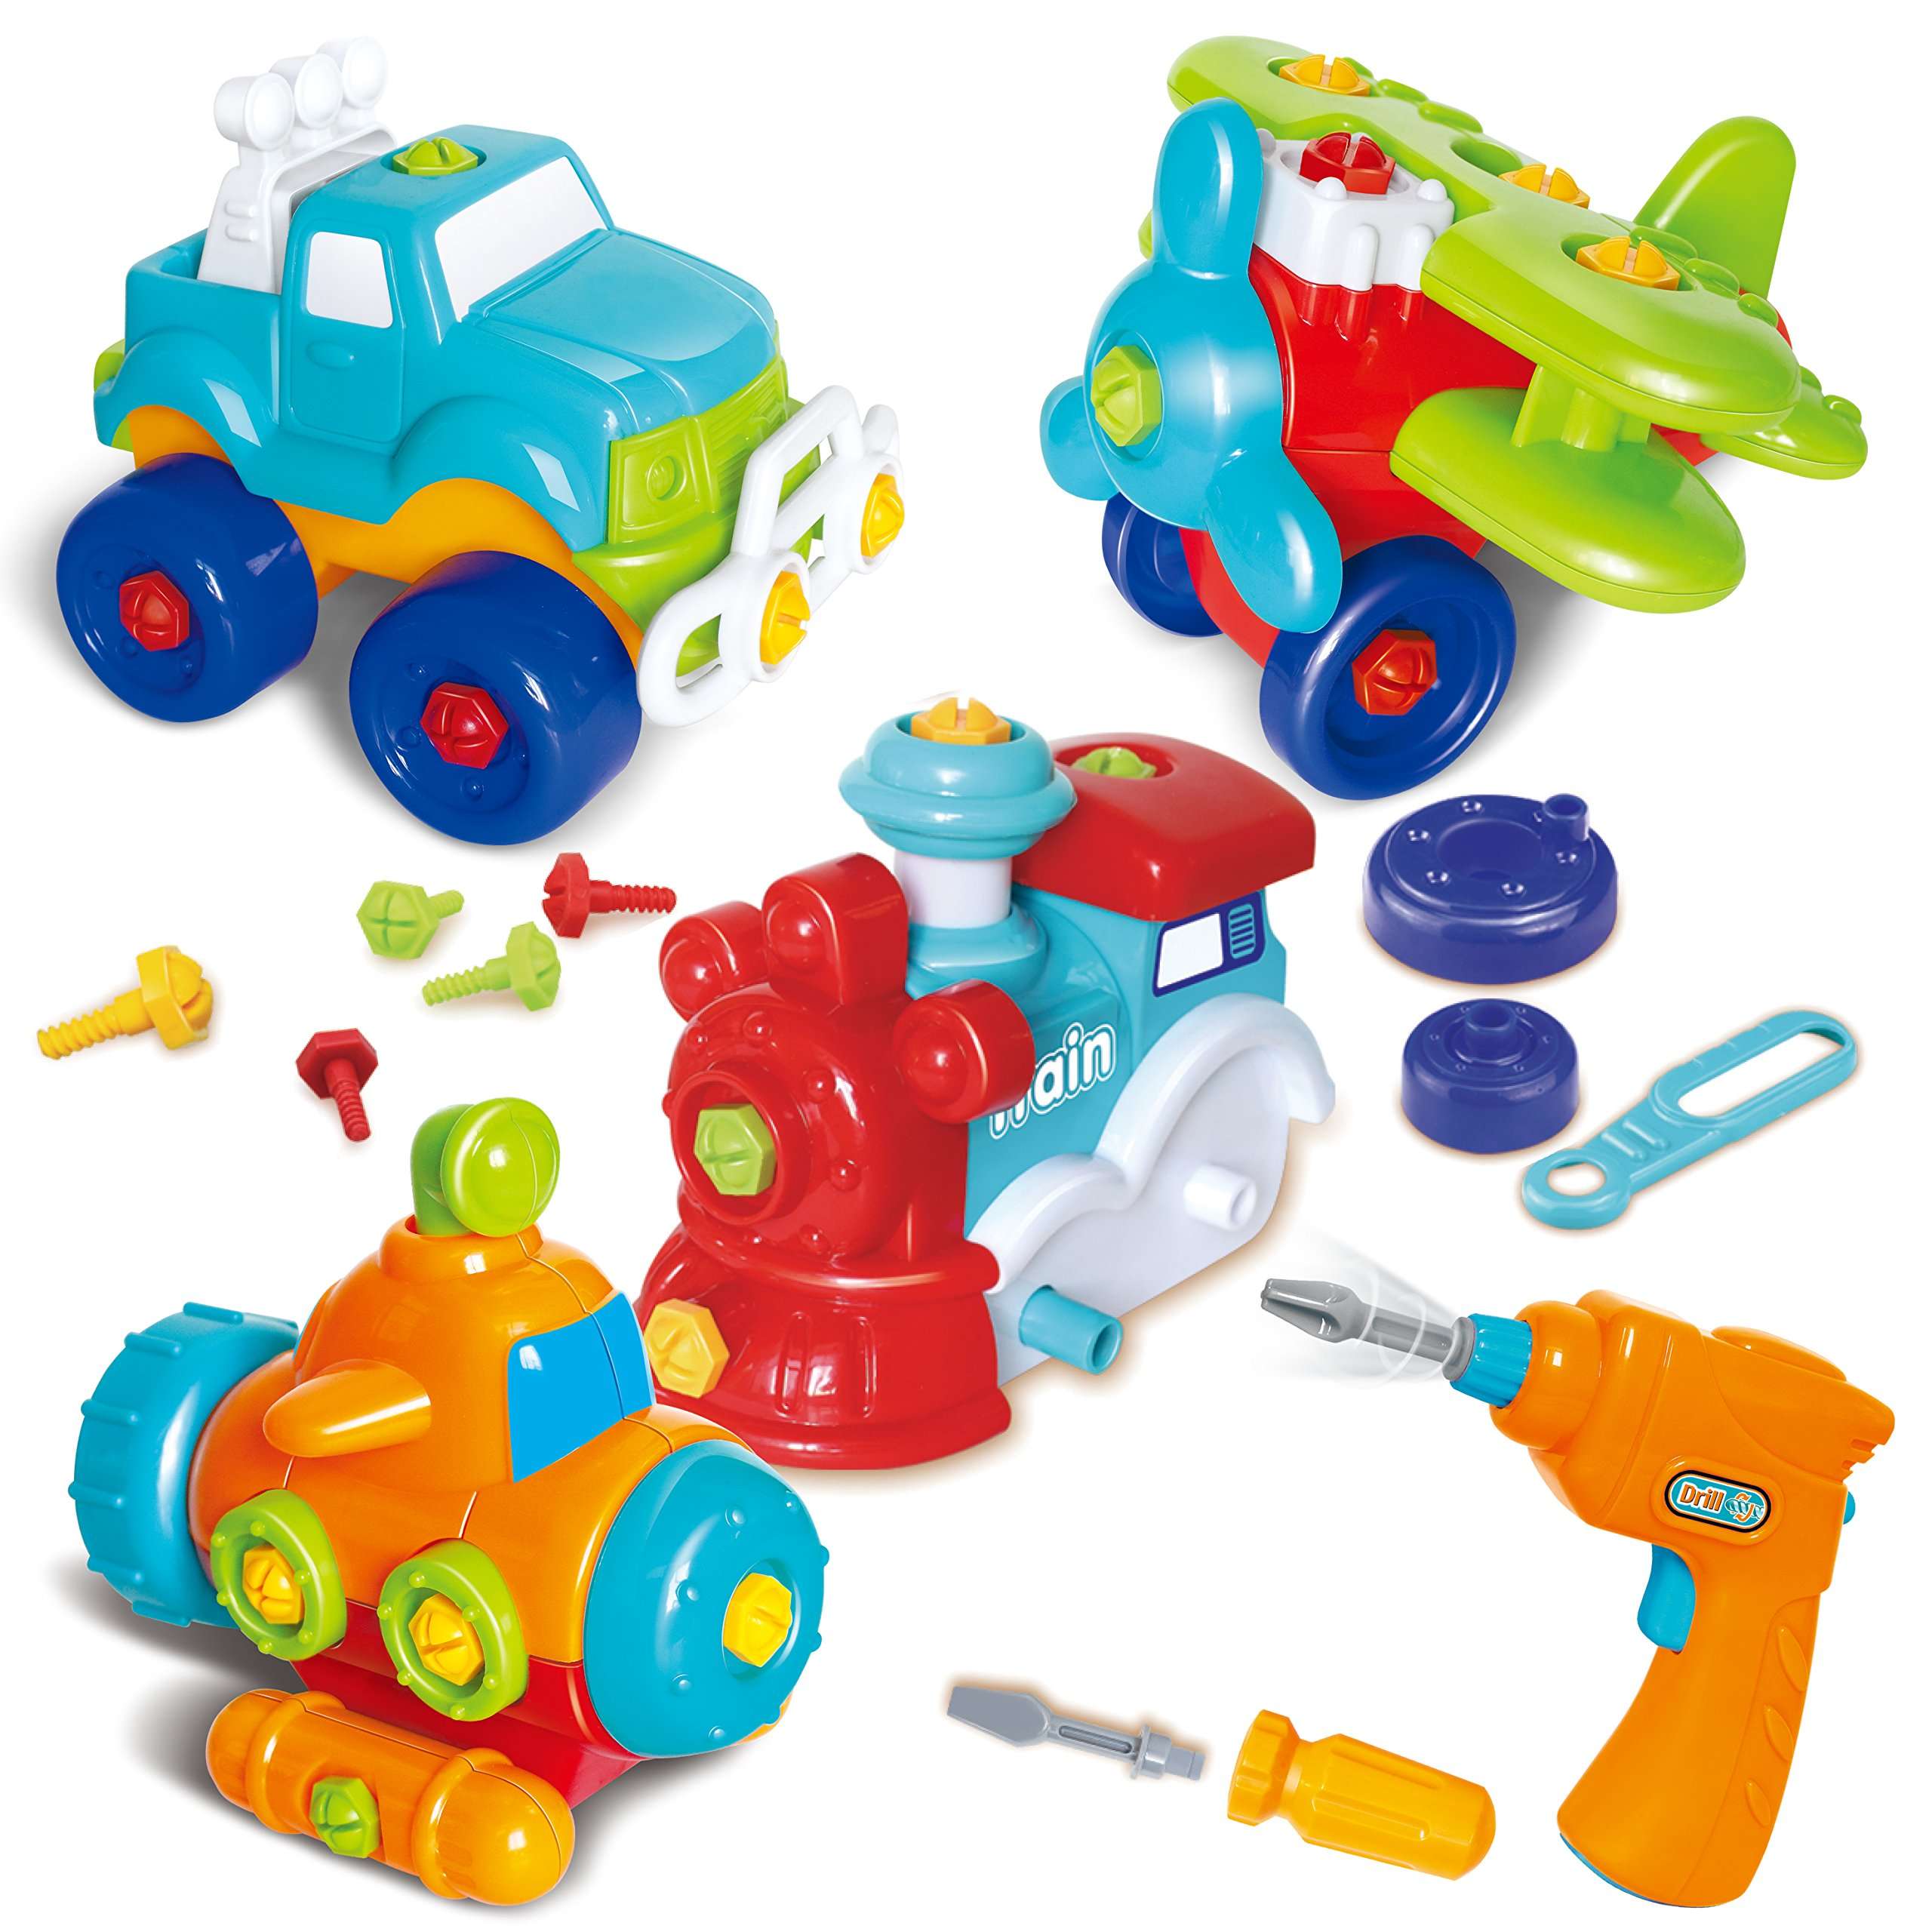 Joyin Toy Take-a-part Train, Truck, Helicopter and Submarine Toys with Power Drill Driver Construction Tool Toddler Push Car Toy Set by JOYIN